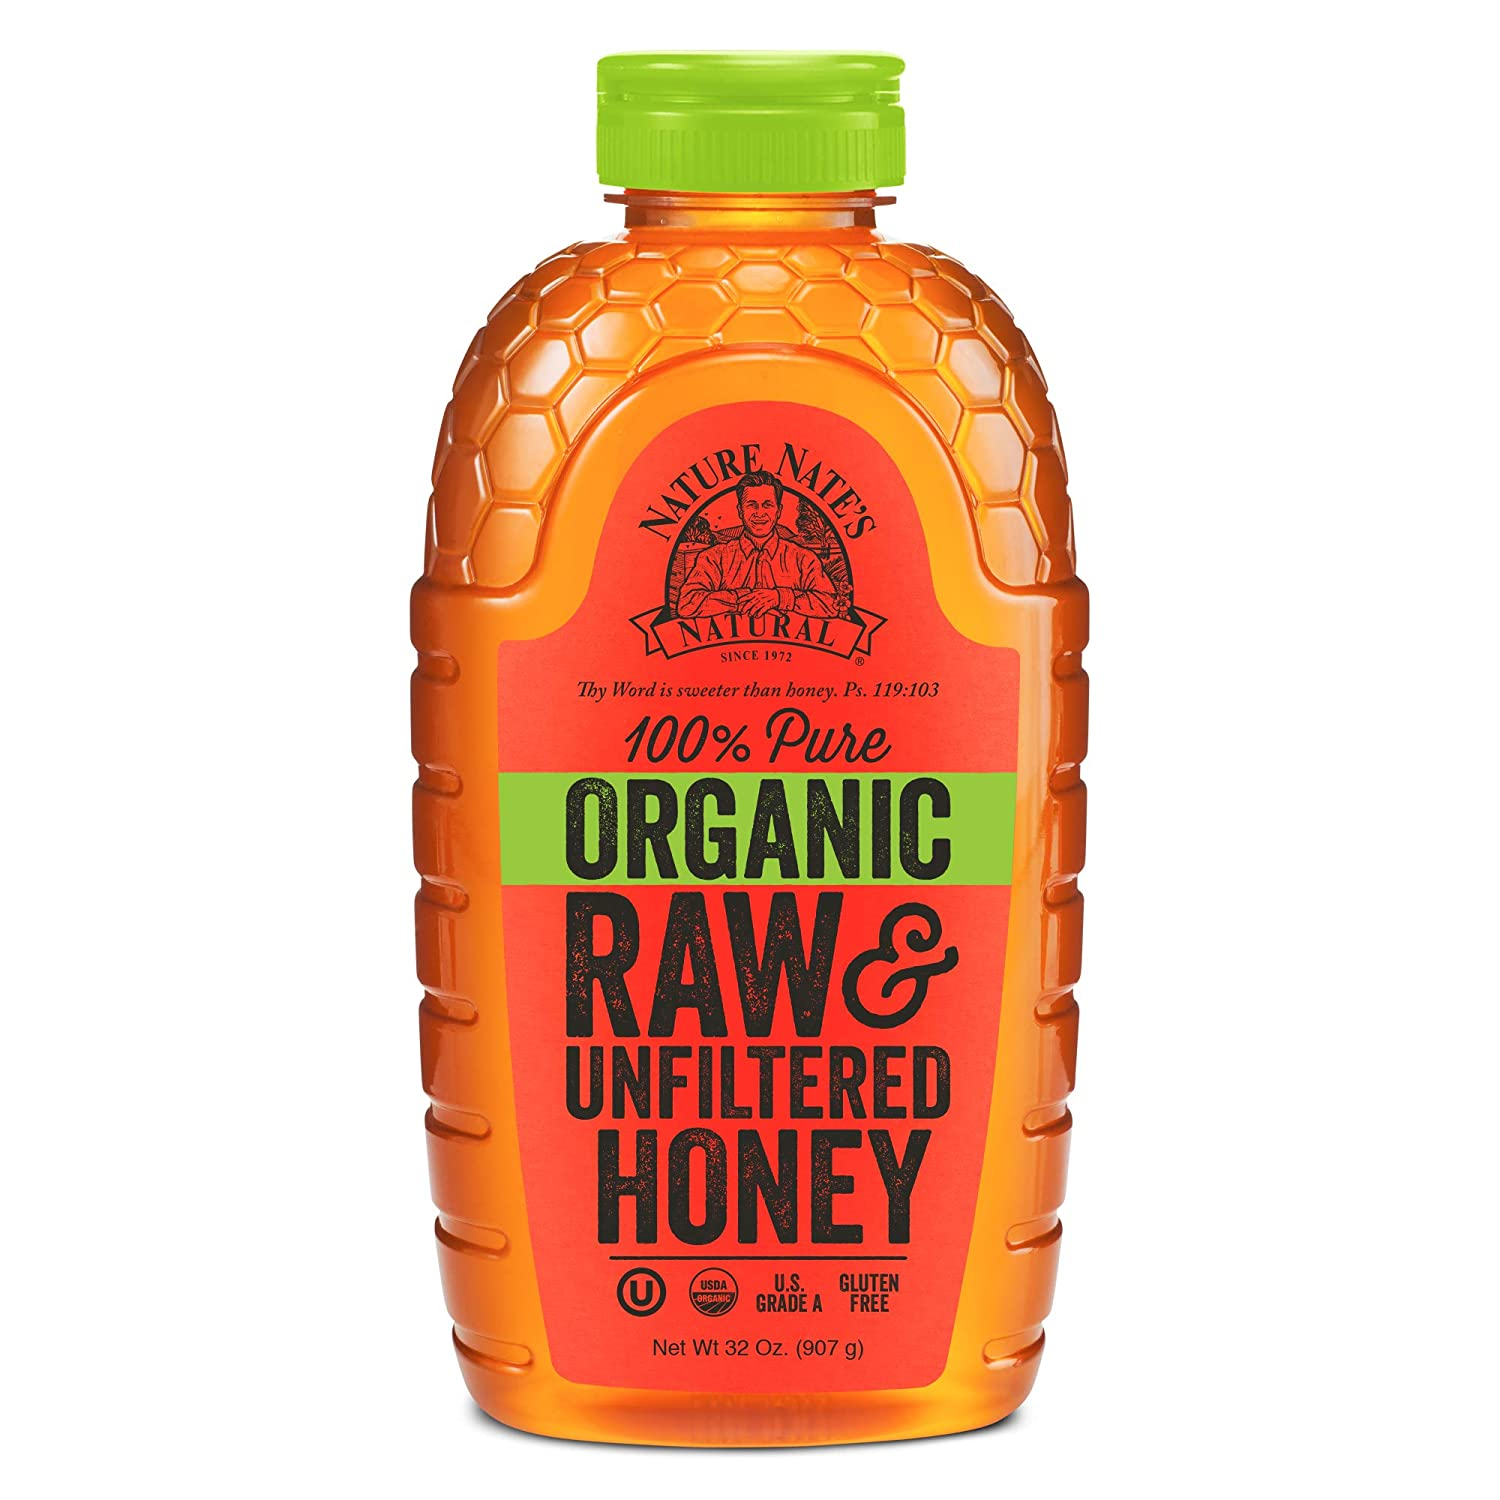 Nature Nate's 100% Pure Raw & Unfiltered Organic Honey; 32-oz. Squeeze Bottle, Honey's Balanced Flavor and Wholesome Benefits, Just as Nature Intended (Packaging may vary)